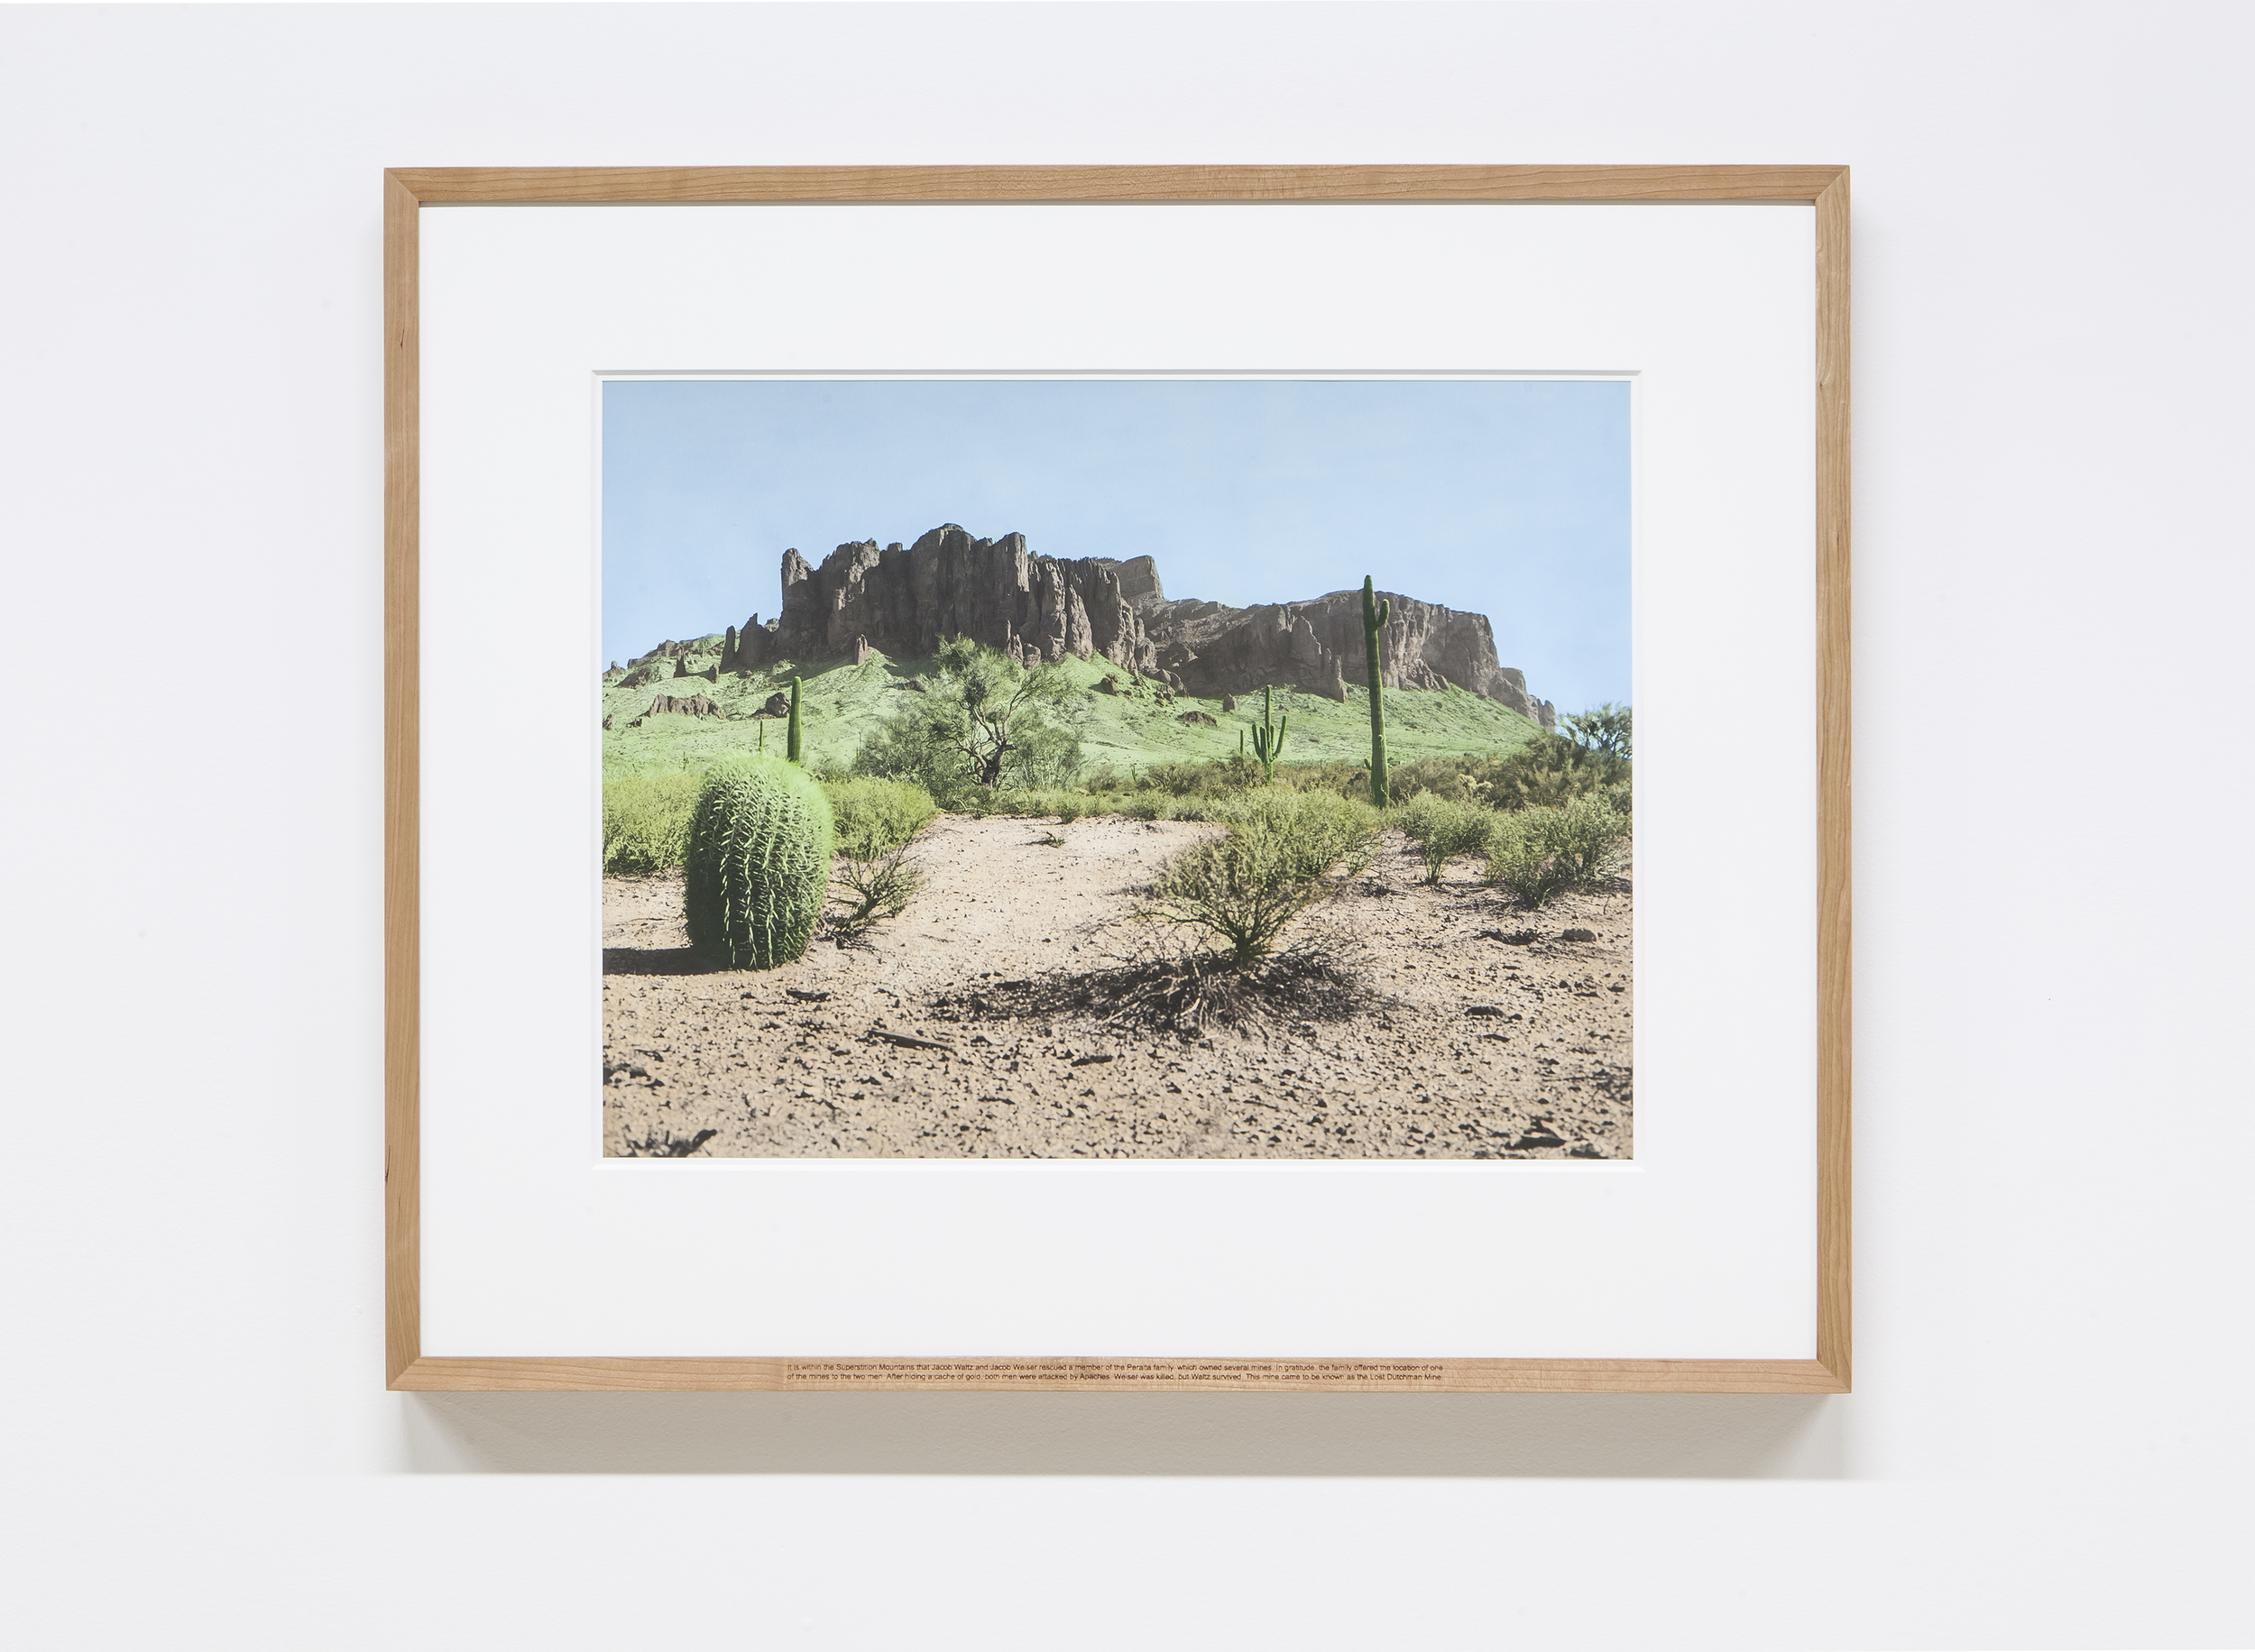 Superstition Mountain - Waltz and Weiser.jpg